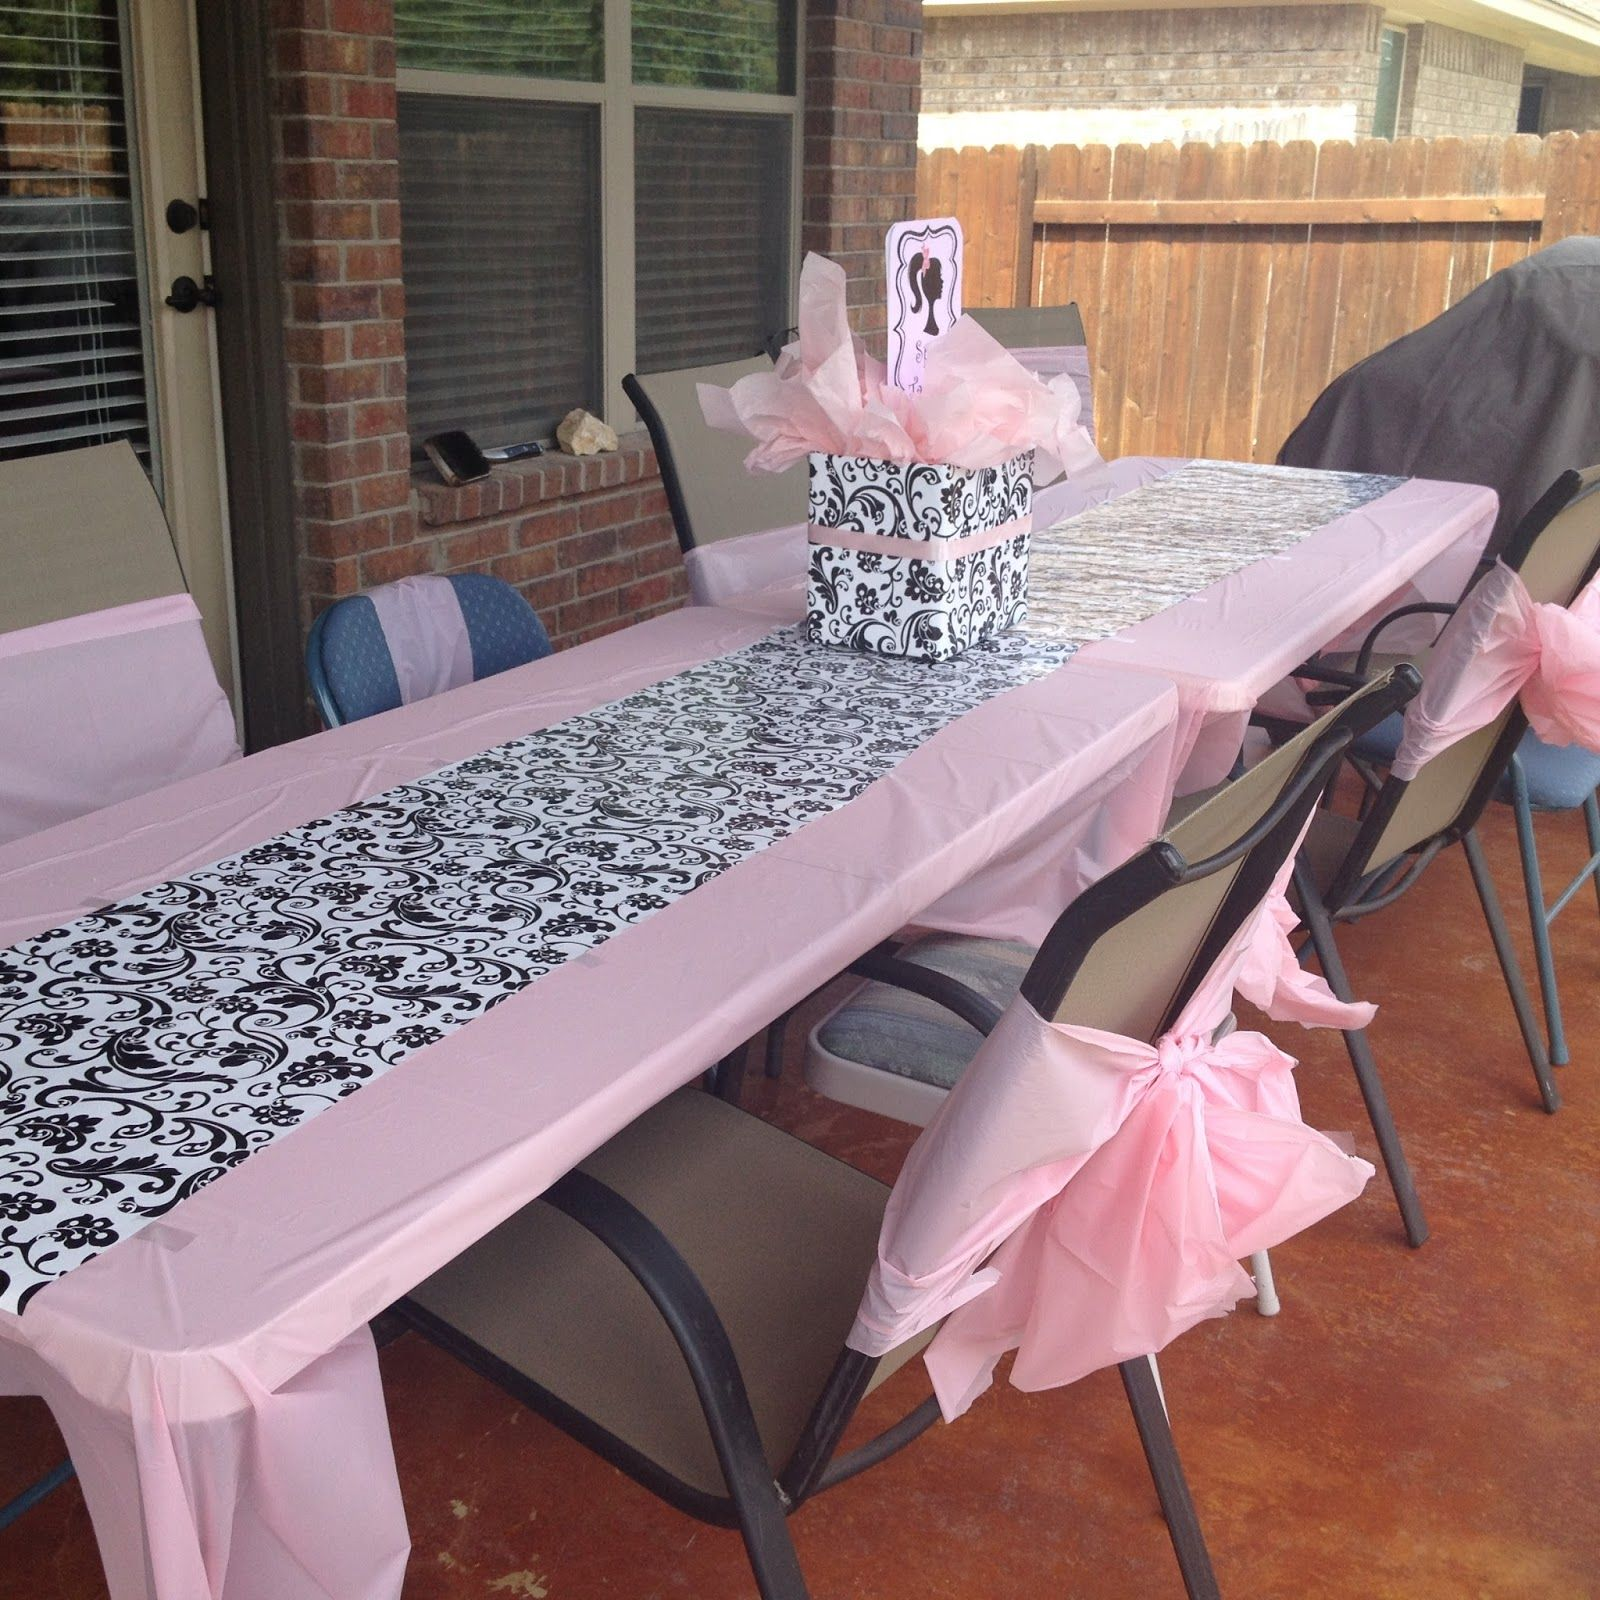 Wrapping Paper As Table Runner Extra Tablecloths As Chair Ties